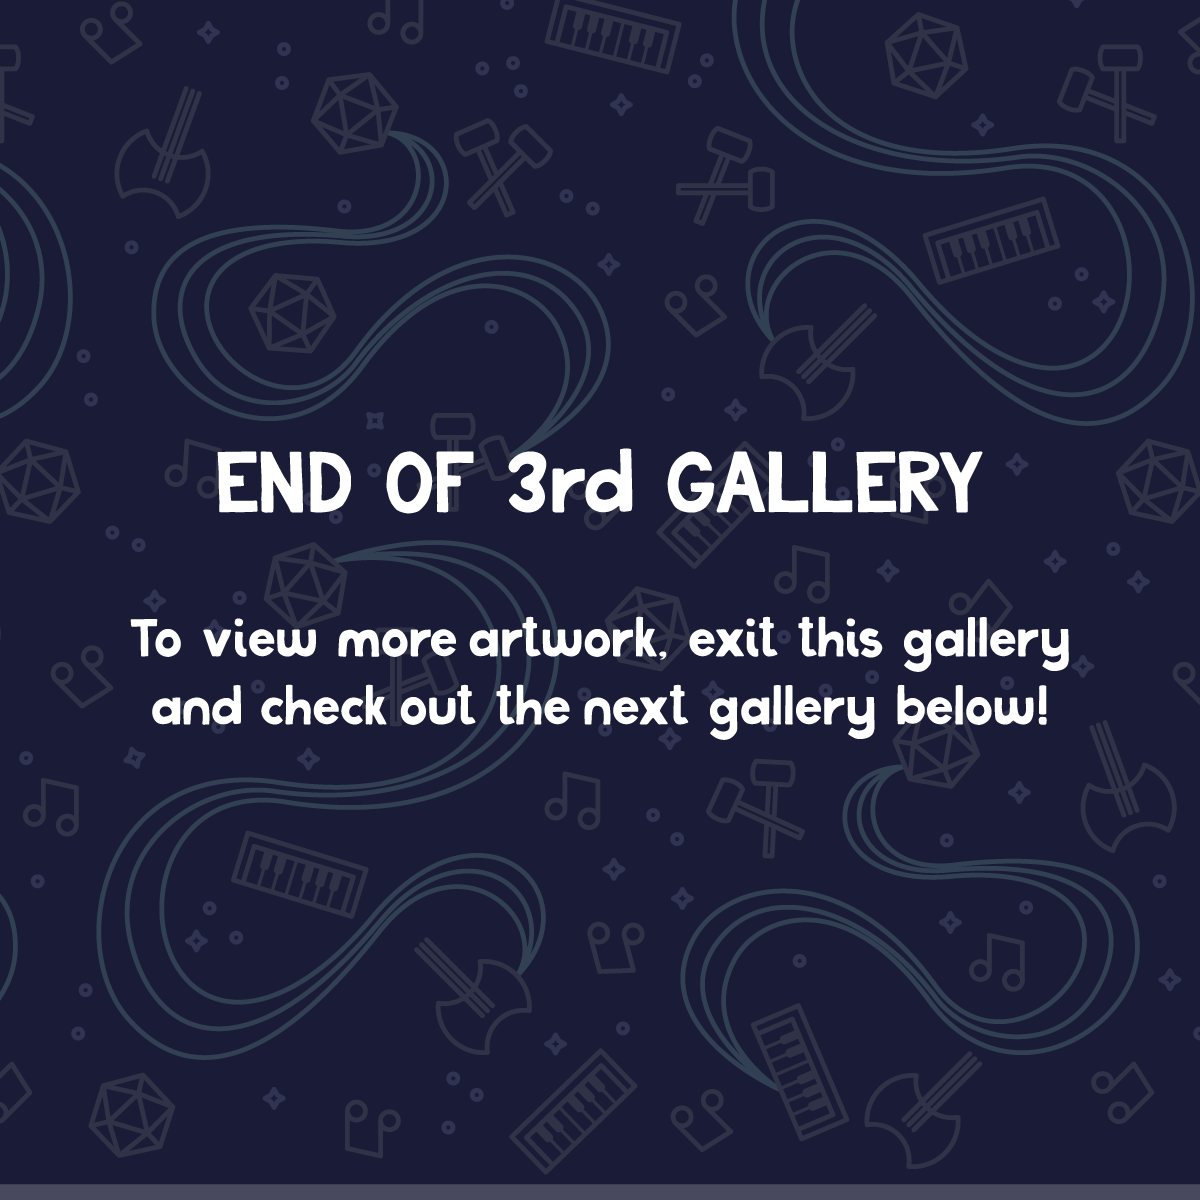 3rd-gallery-end.png